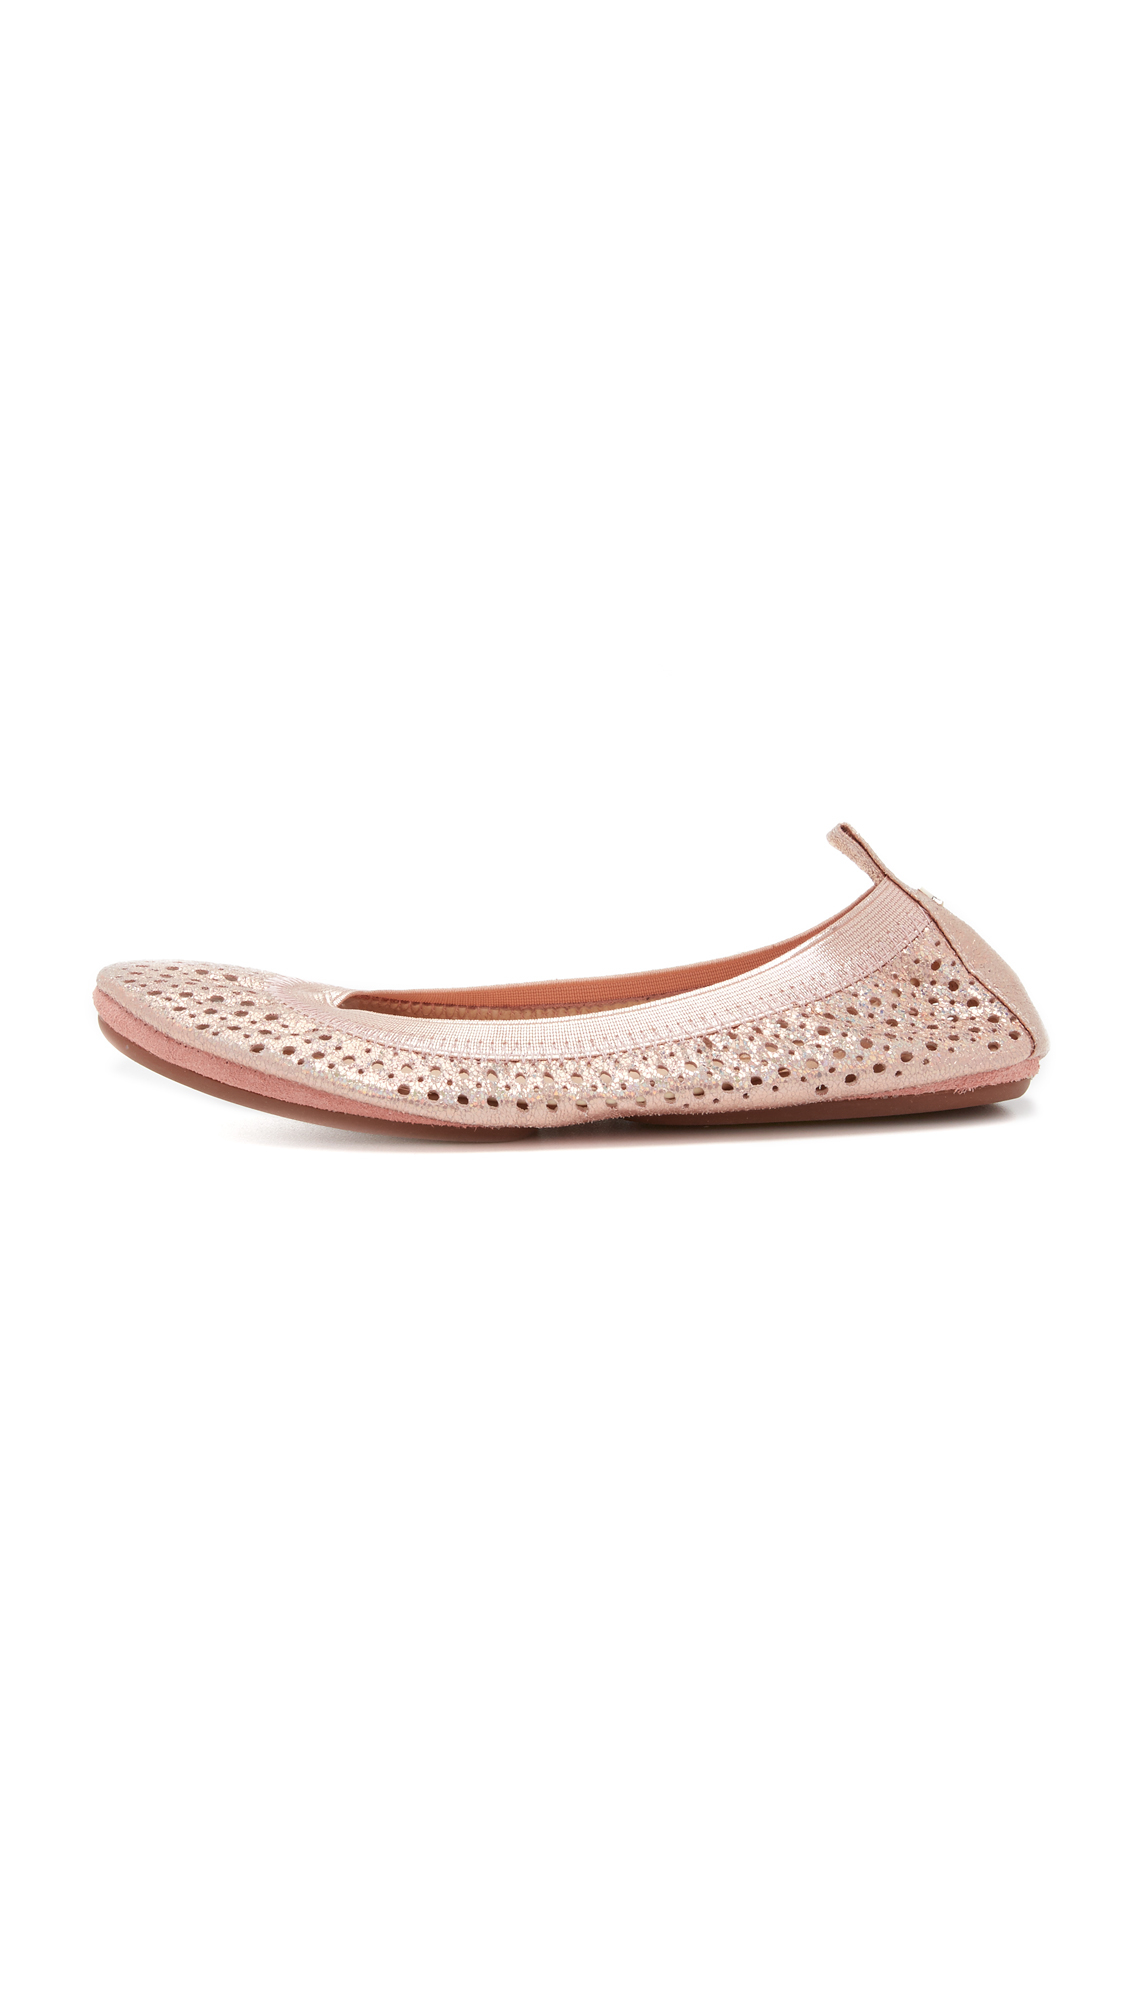 Yosi Samra felt the need to give the industry what it needed by designing a beautiful collection of classic ballet flats, flip-flops, T-strap ballet flats, classic loafers, crossover ballet flats, and handbags. Yosi Samra's shoes not only incorporate comfort, but also stunning flair.